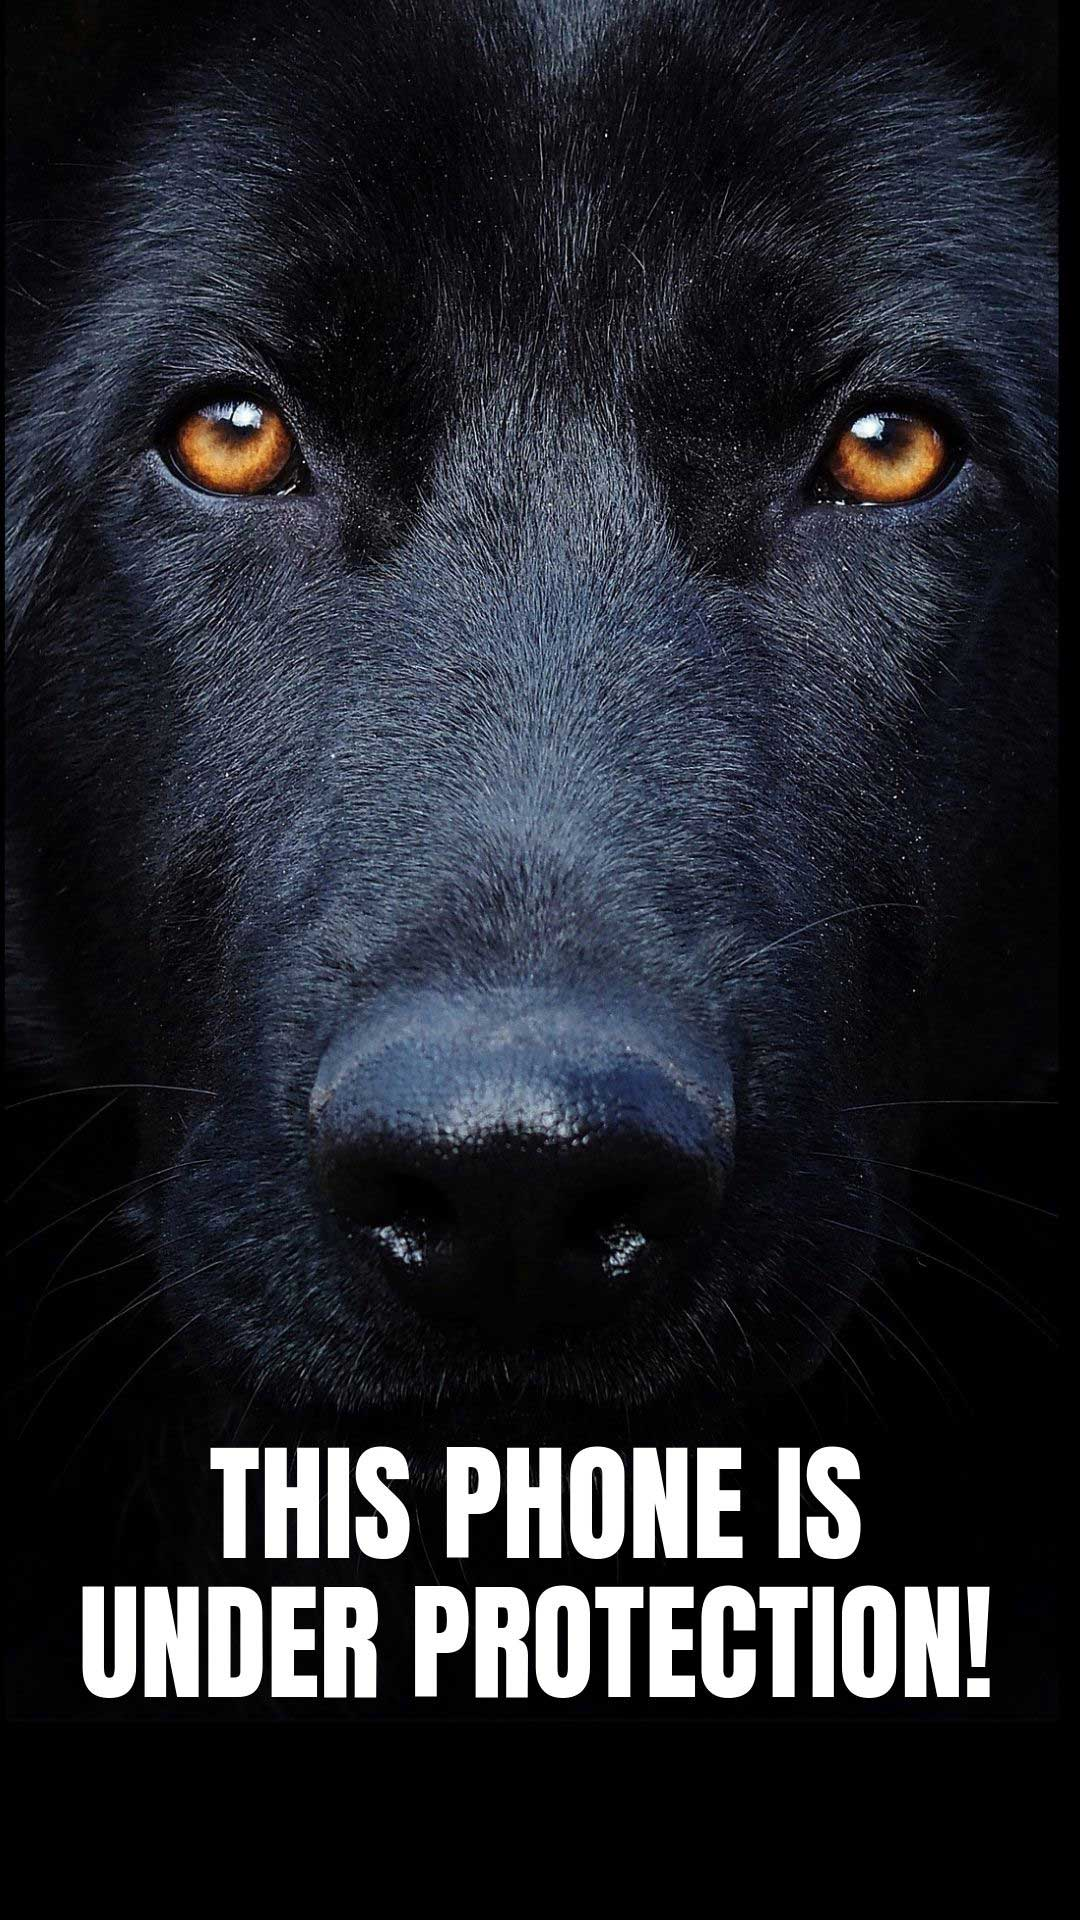 Dog Phone Wallpapers   Top Dog Phone Backgrounds 1080x1920